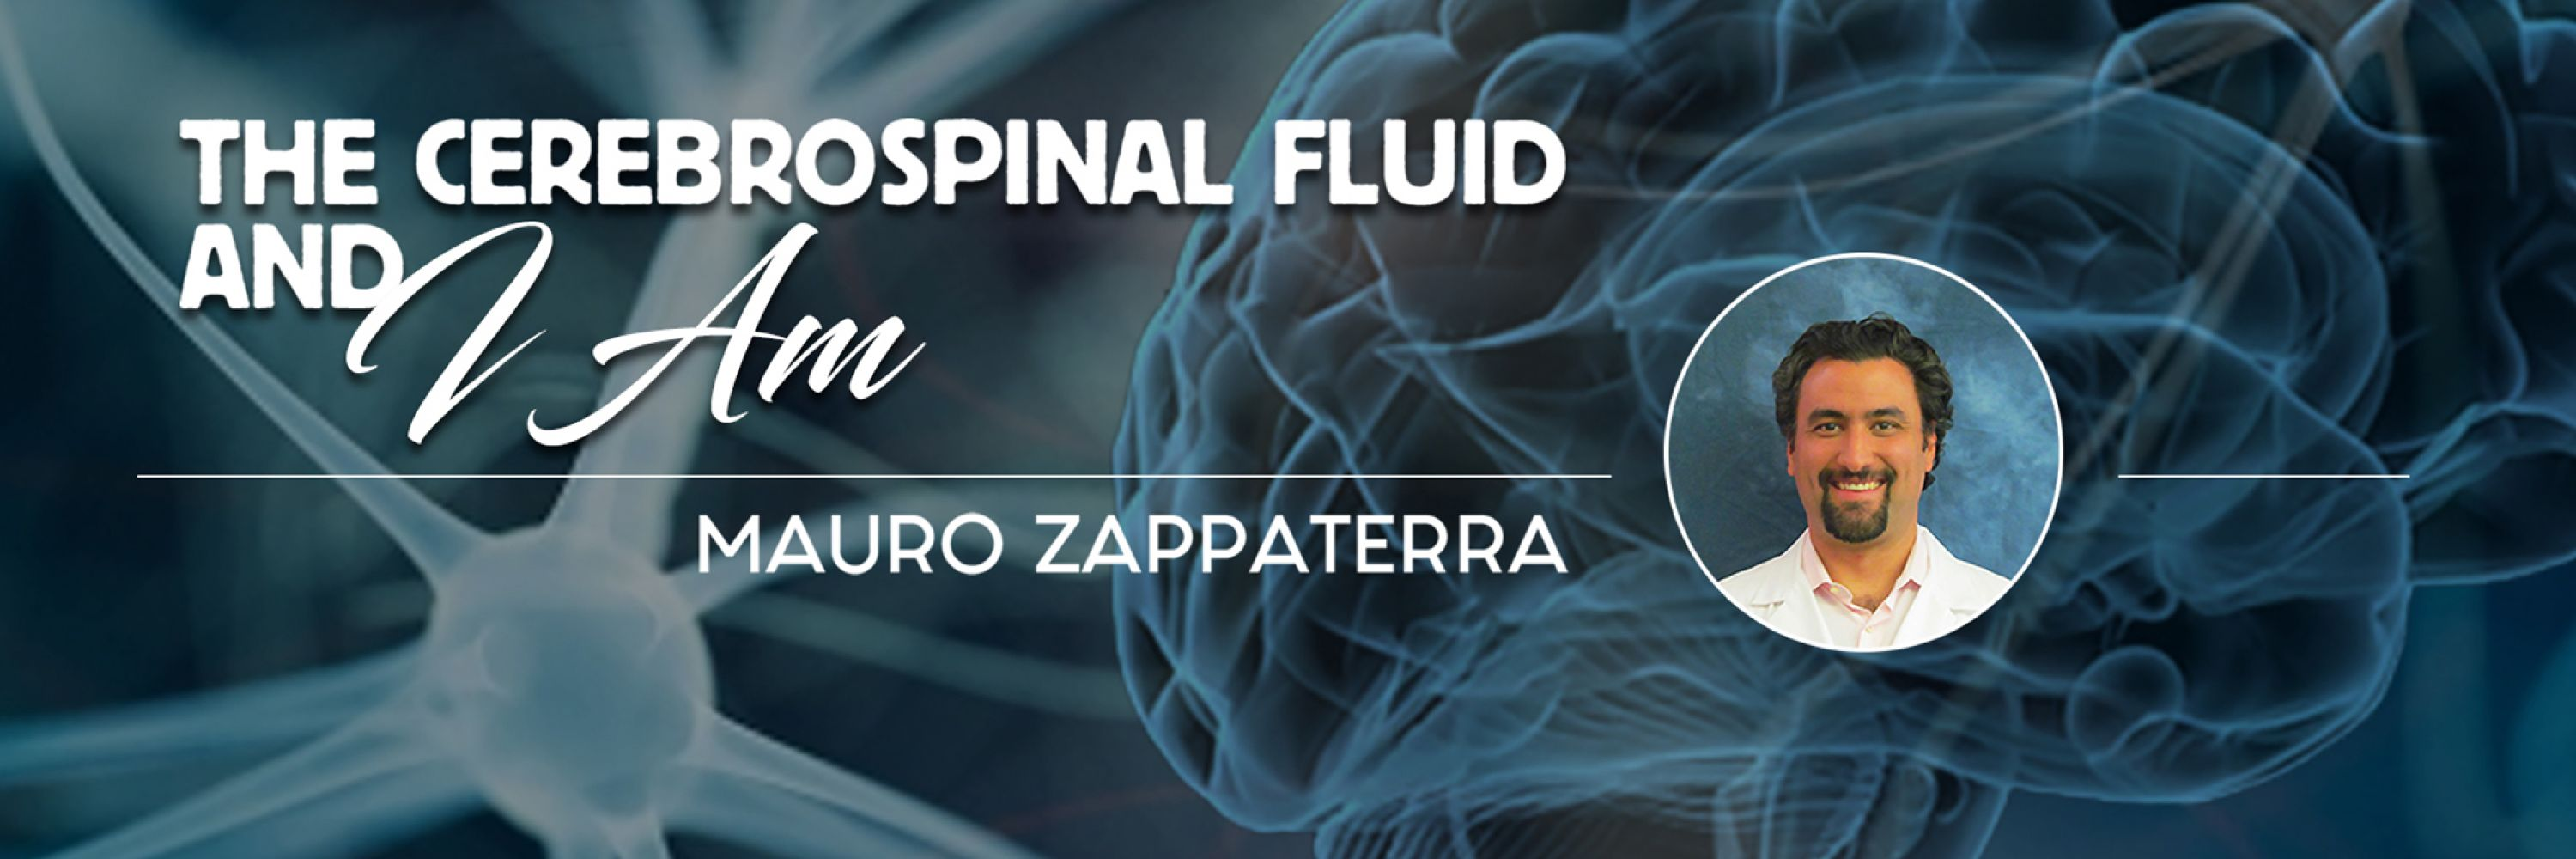 The Cerebrospinal Fluid and I AM